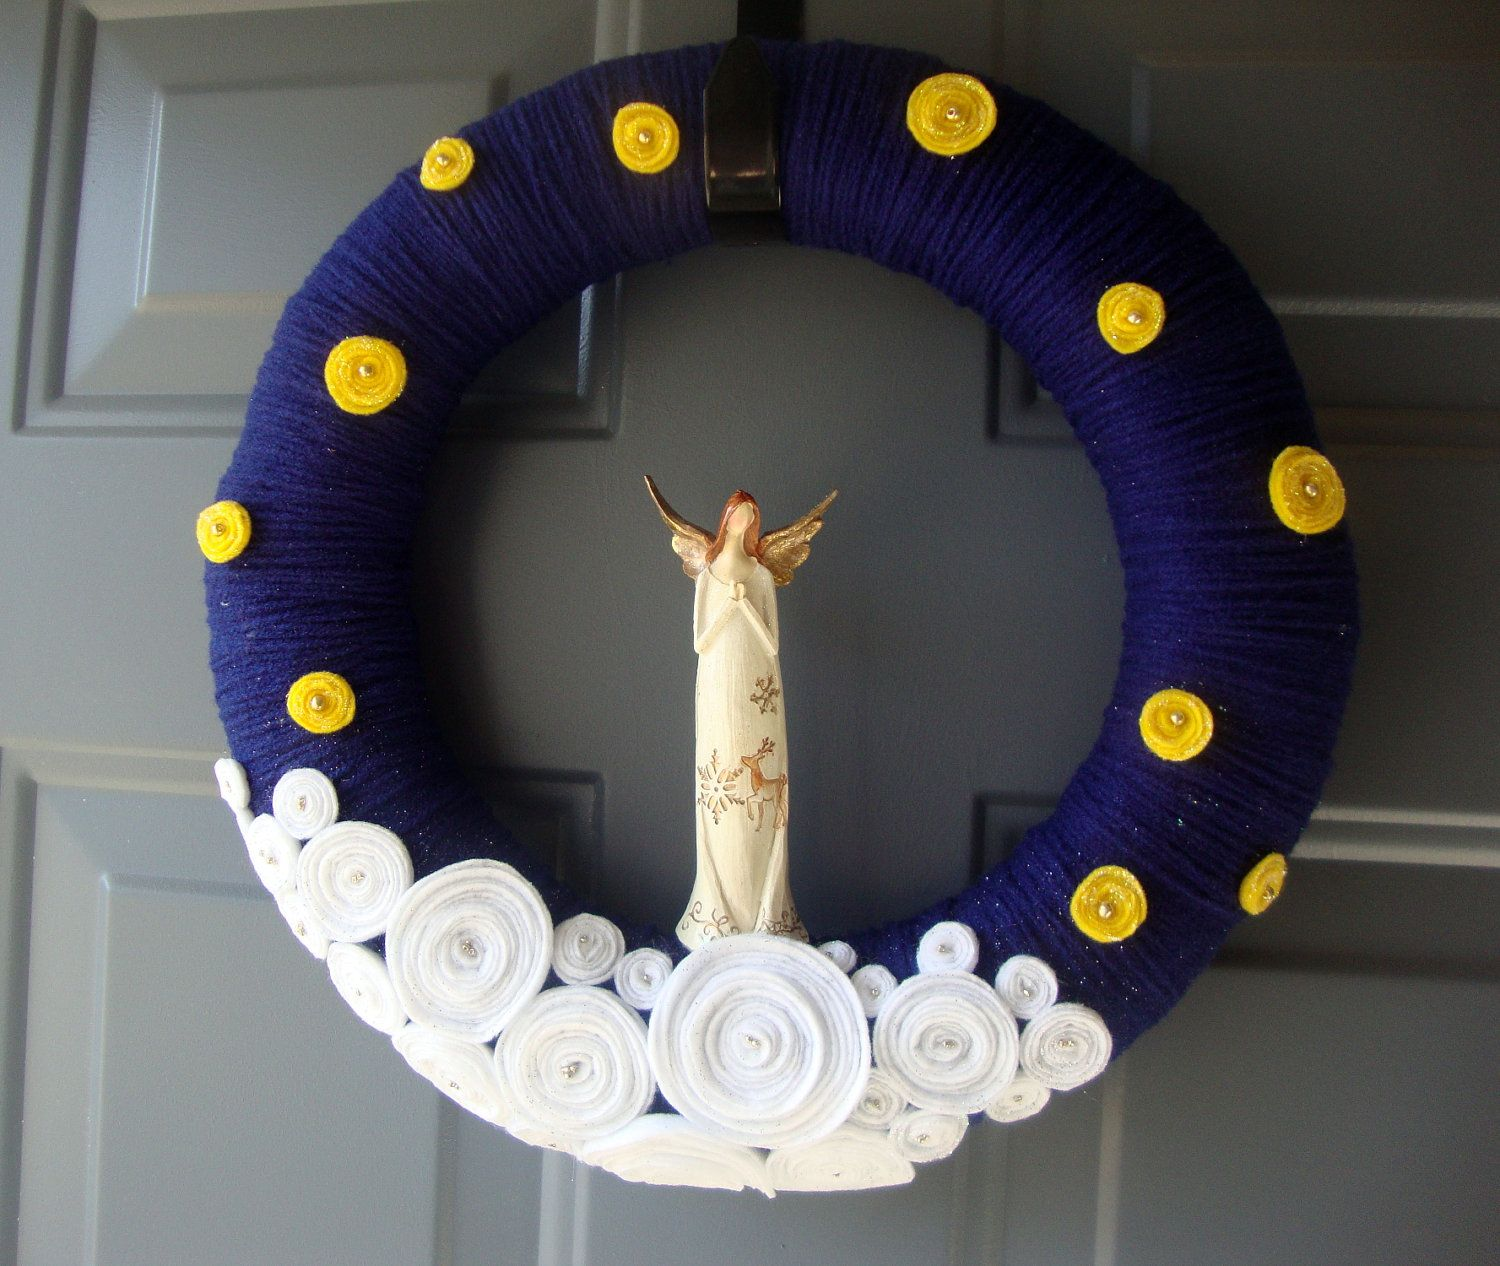 A very different Christmas wreath with an angel.